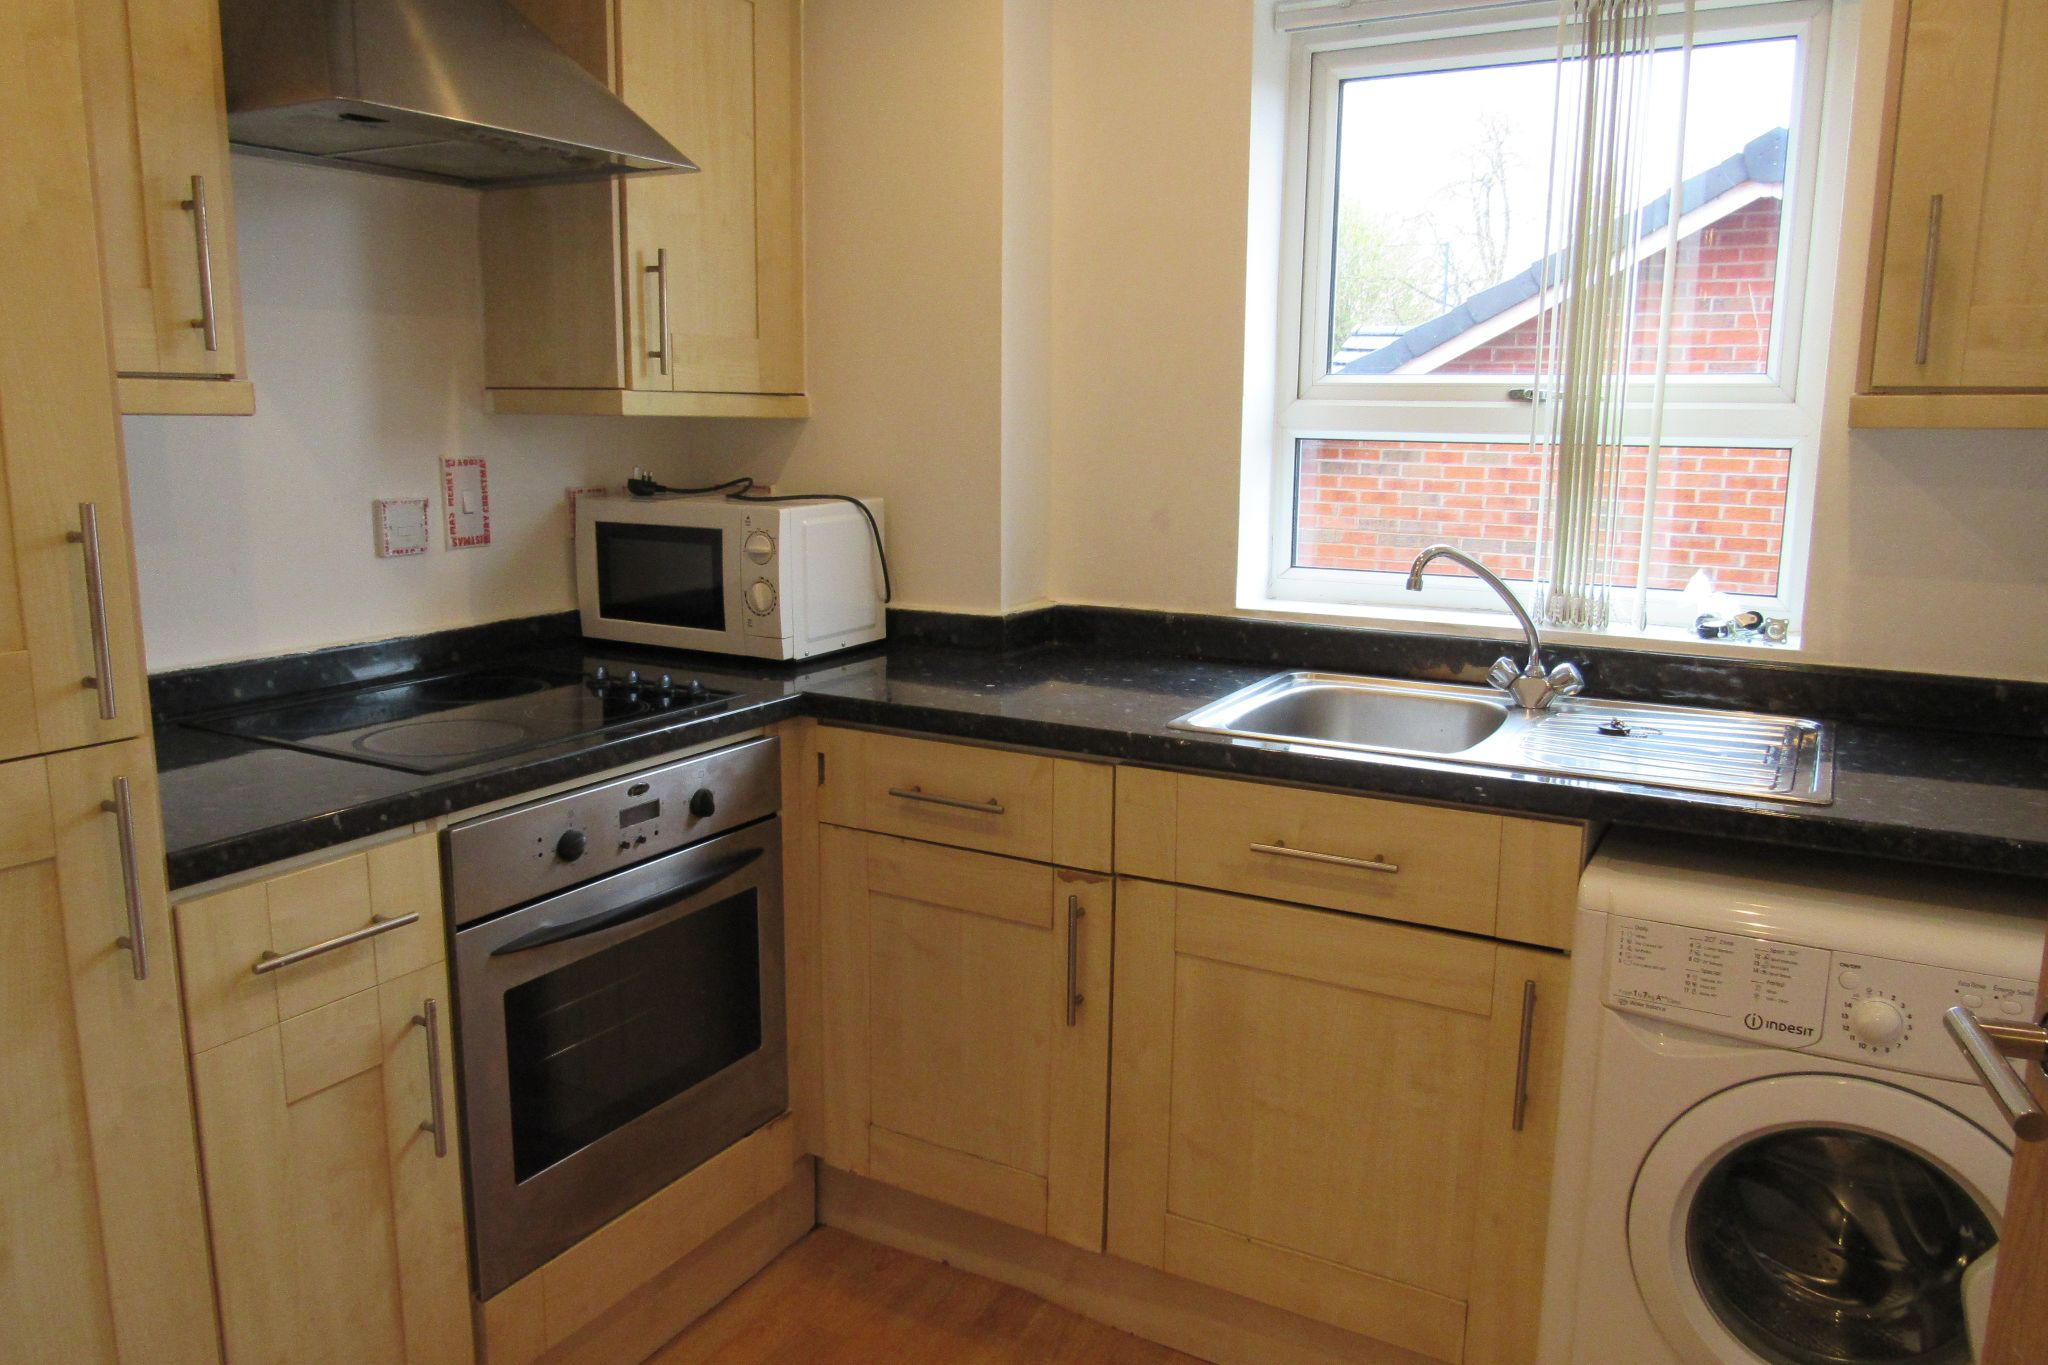 2 bedroom apartment flat/apartment SSTC in Manchester - Photograph 5.